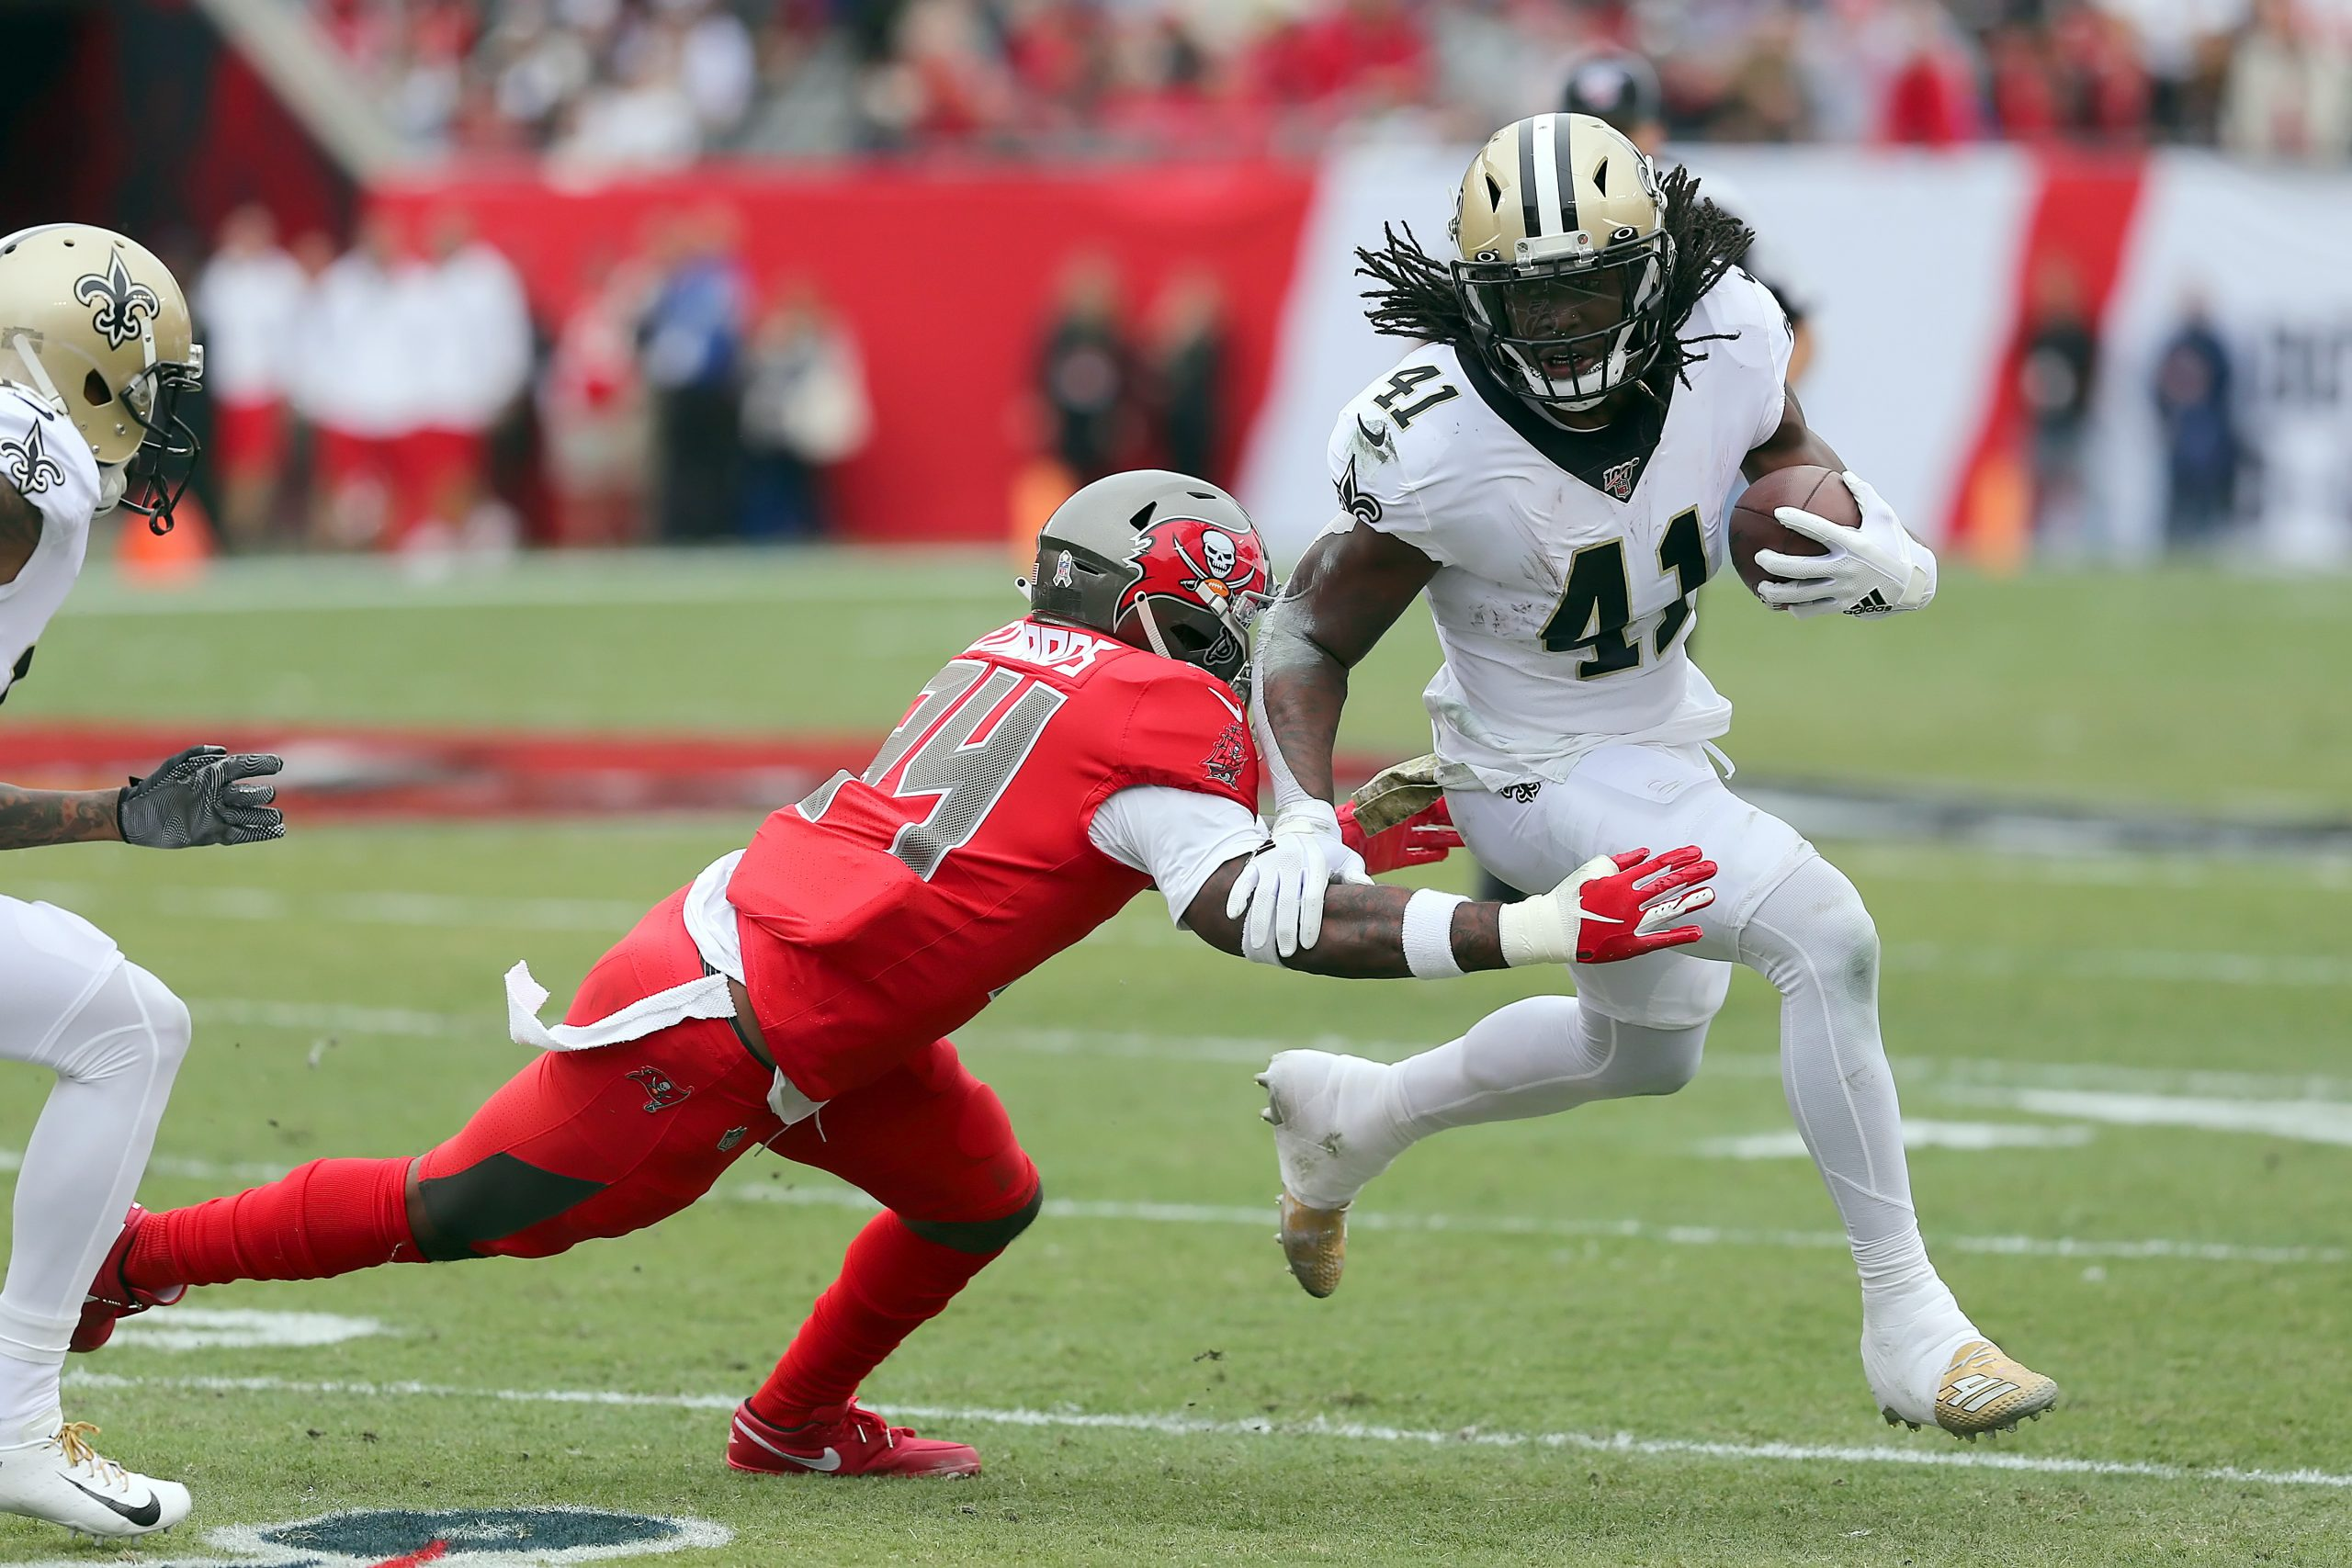 TAMPA, FL - NOV 17: Mike Edwards (34) of the Bucs attempts to wrap up Alvin Kamara (41) of the Saints during the regular